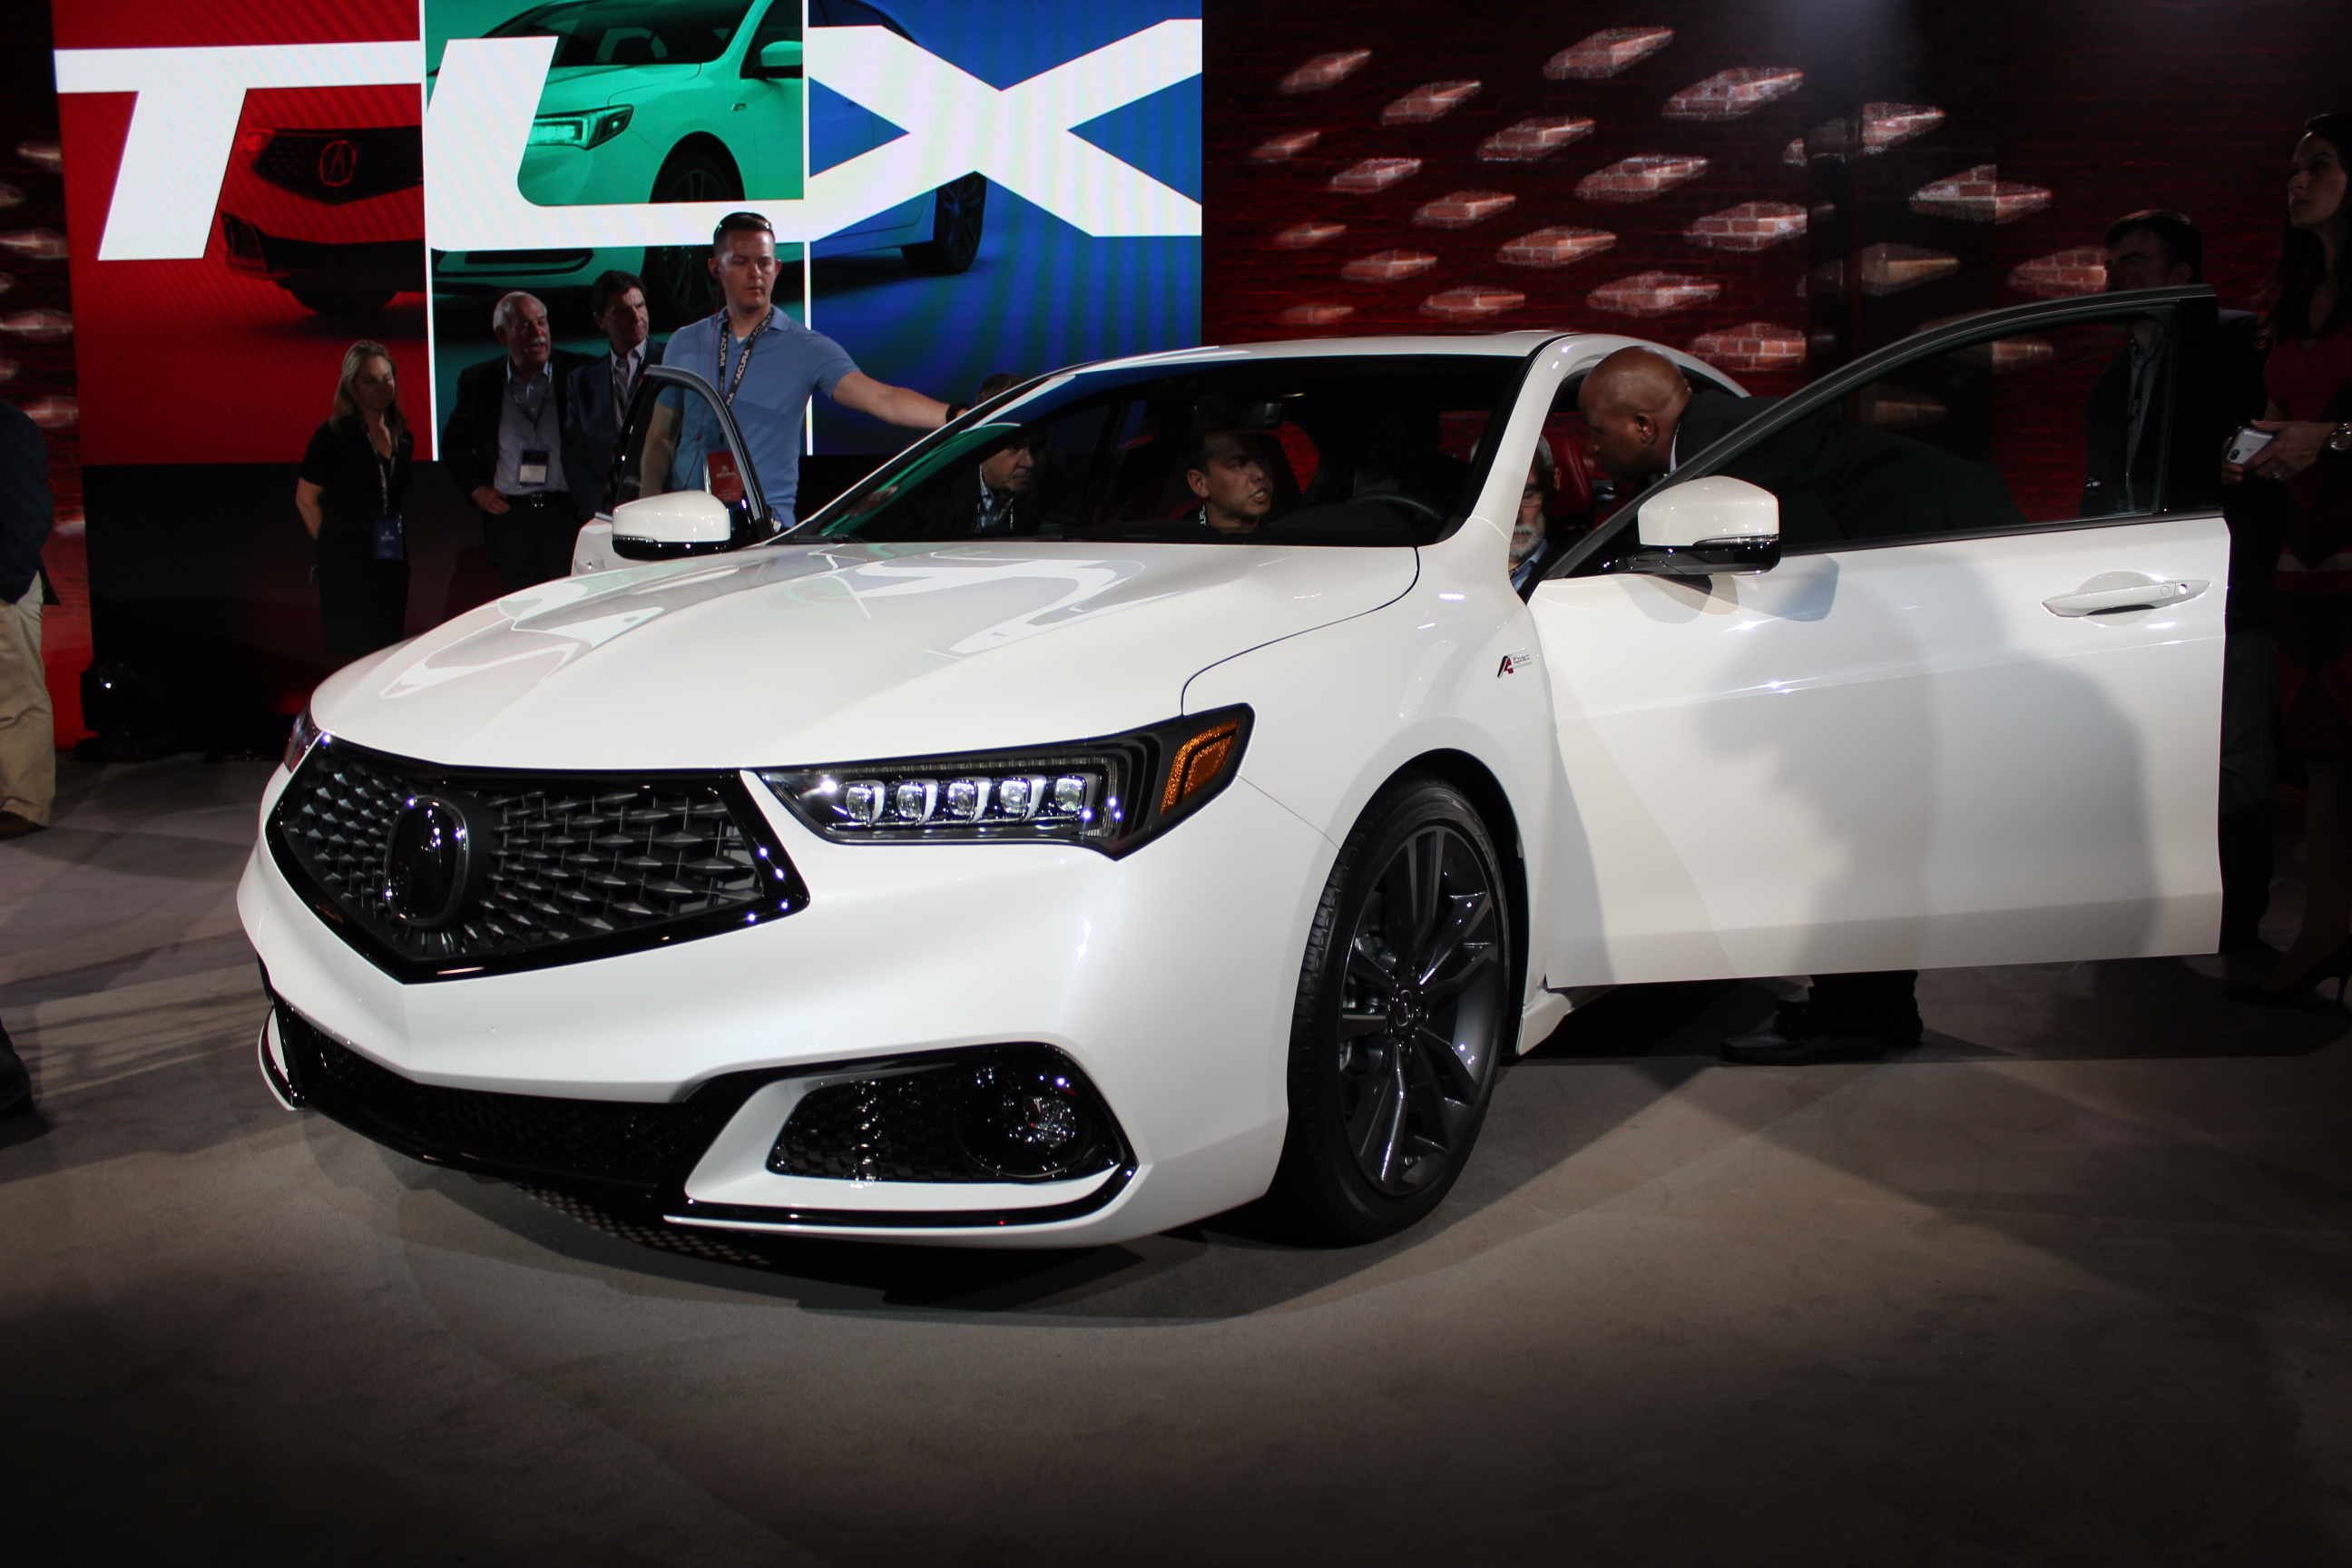 The 2018 Acura Tlx Is Unveiled Ahead Of